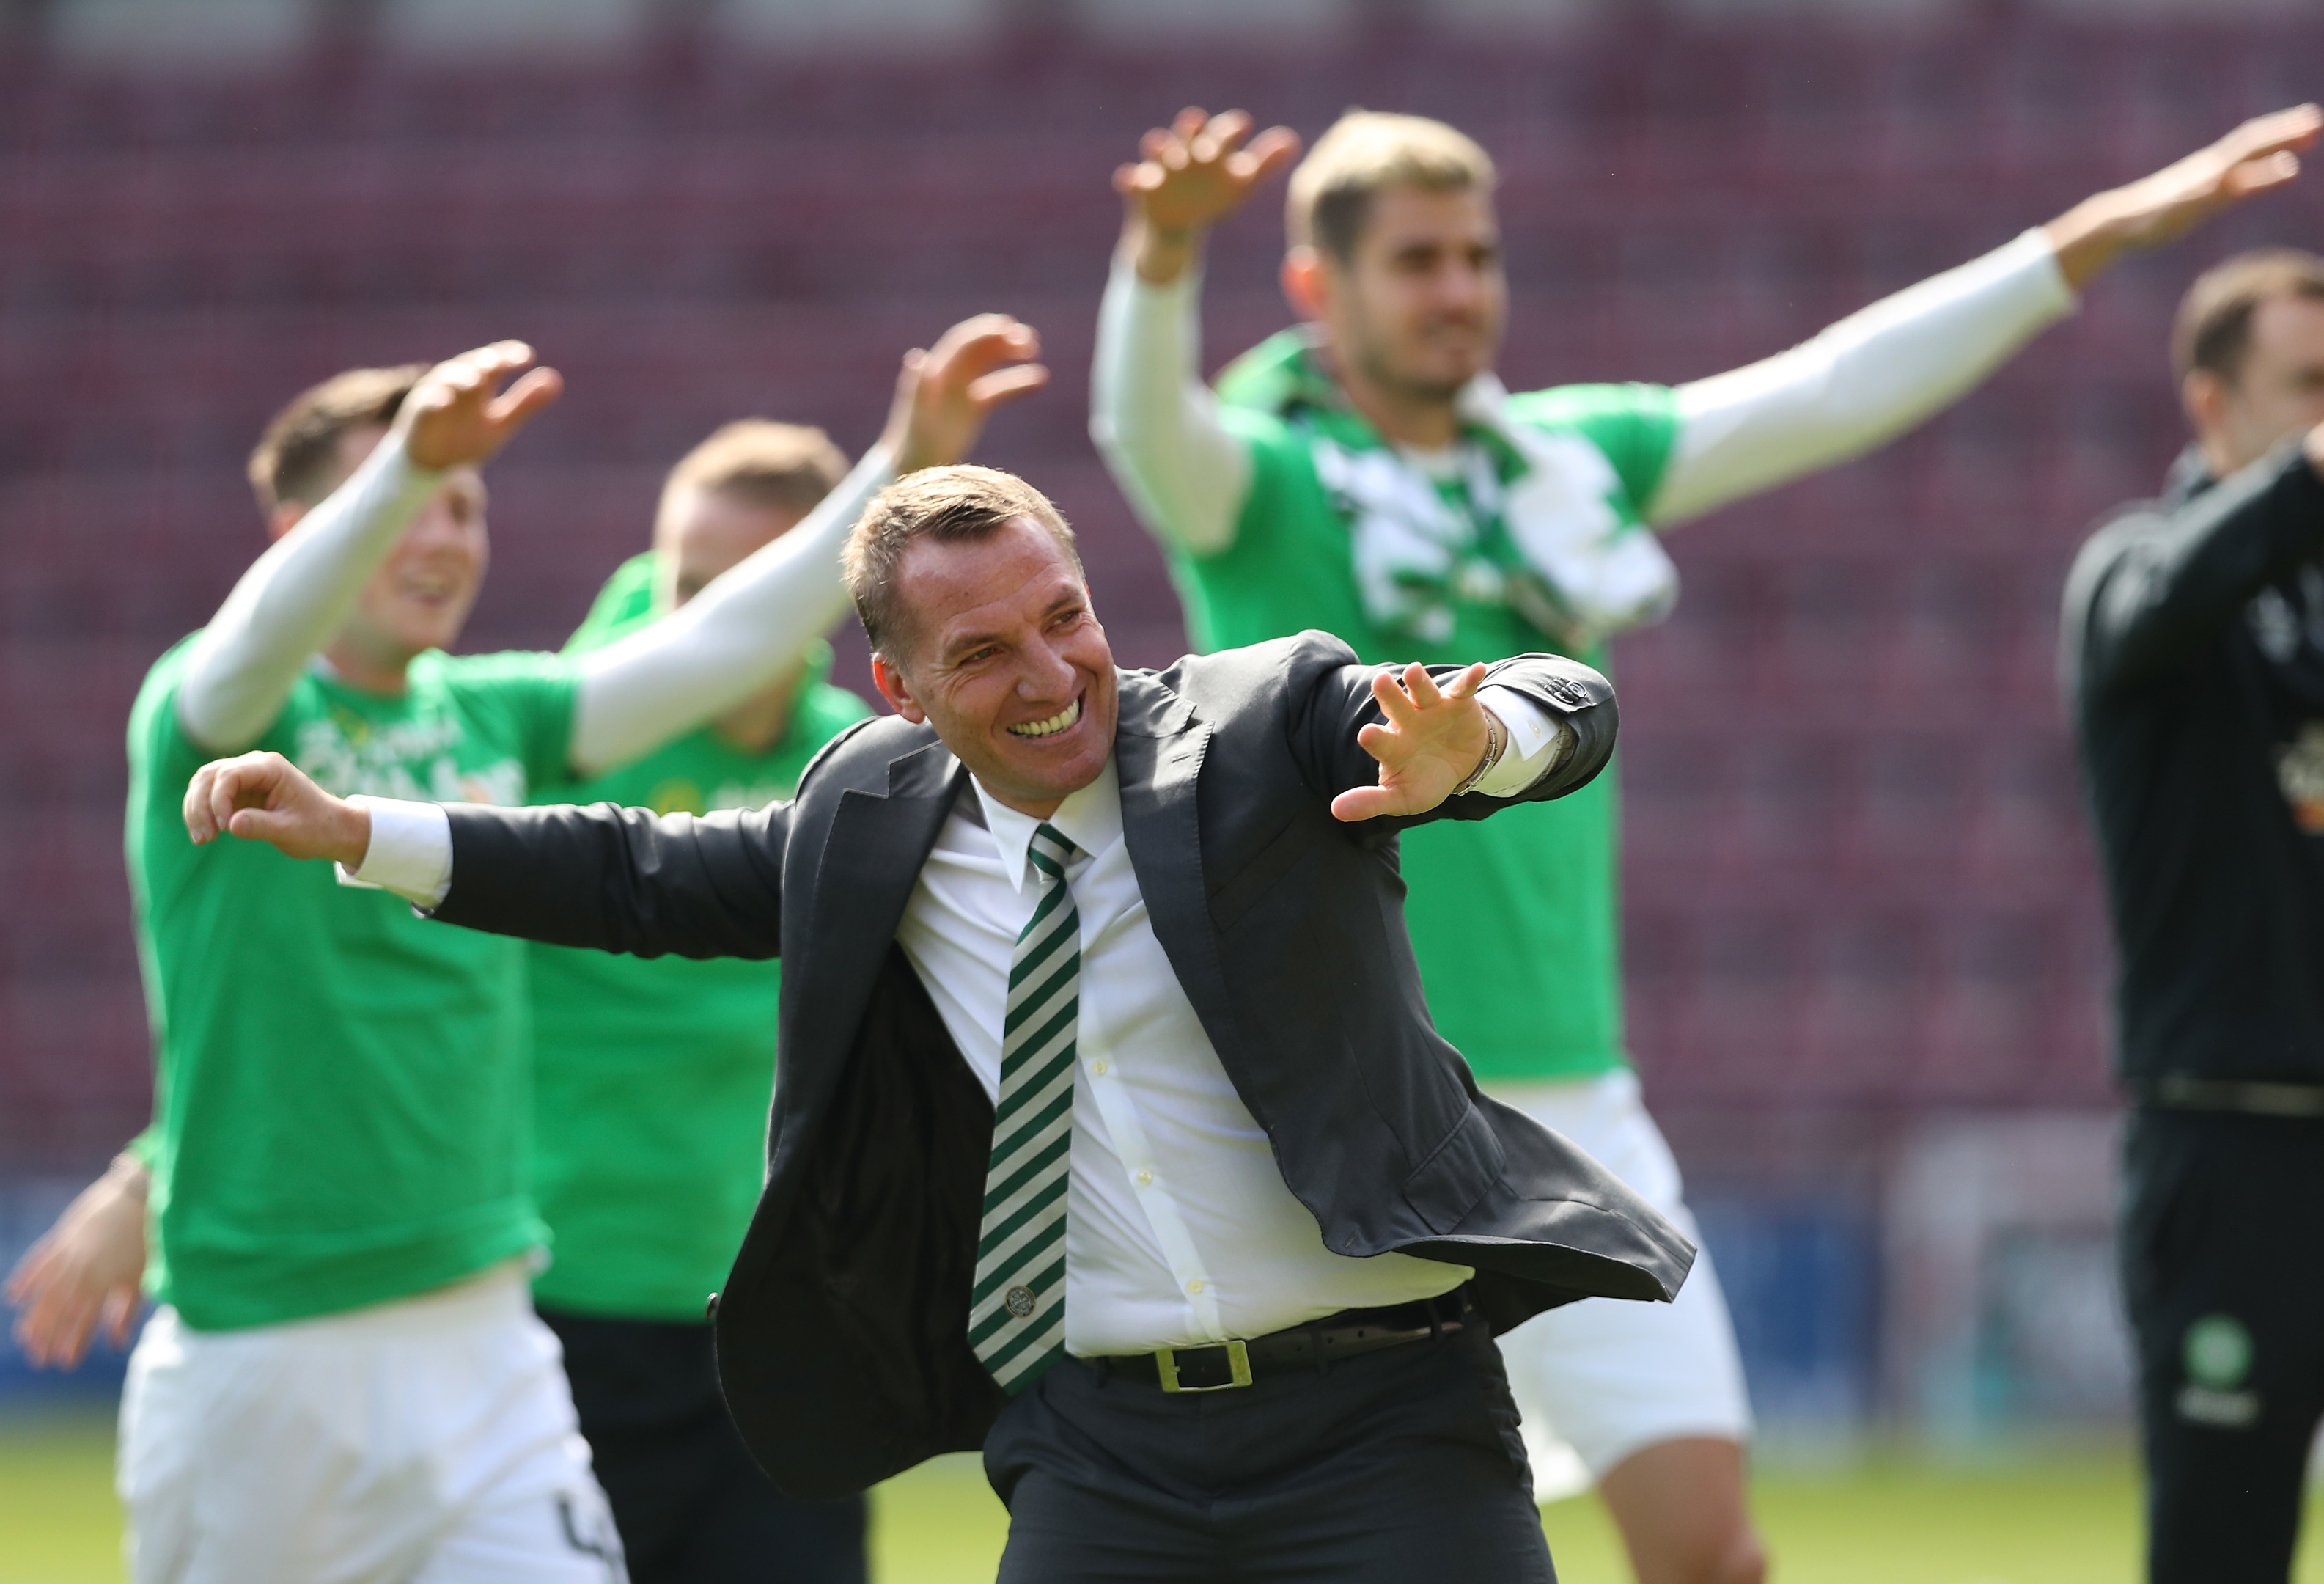 Brendan Rodgers celebrates winning the league title (Ian MacNicol/Getty Images)